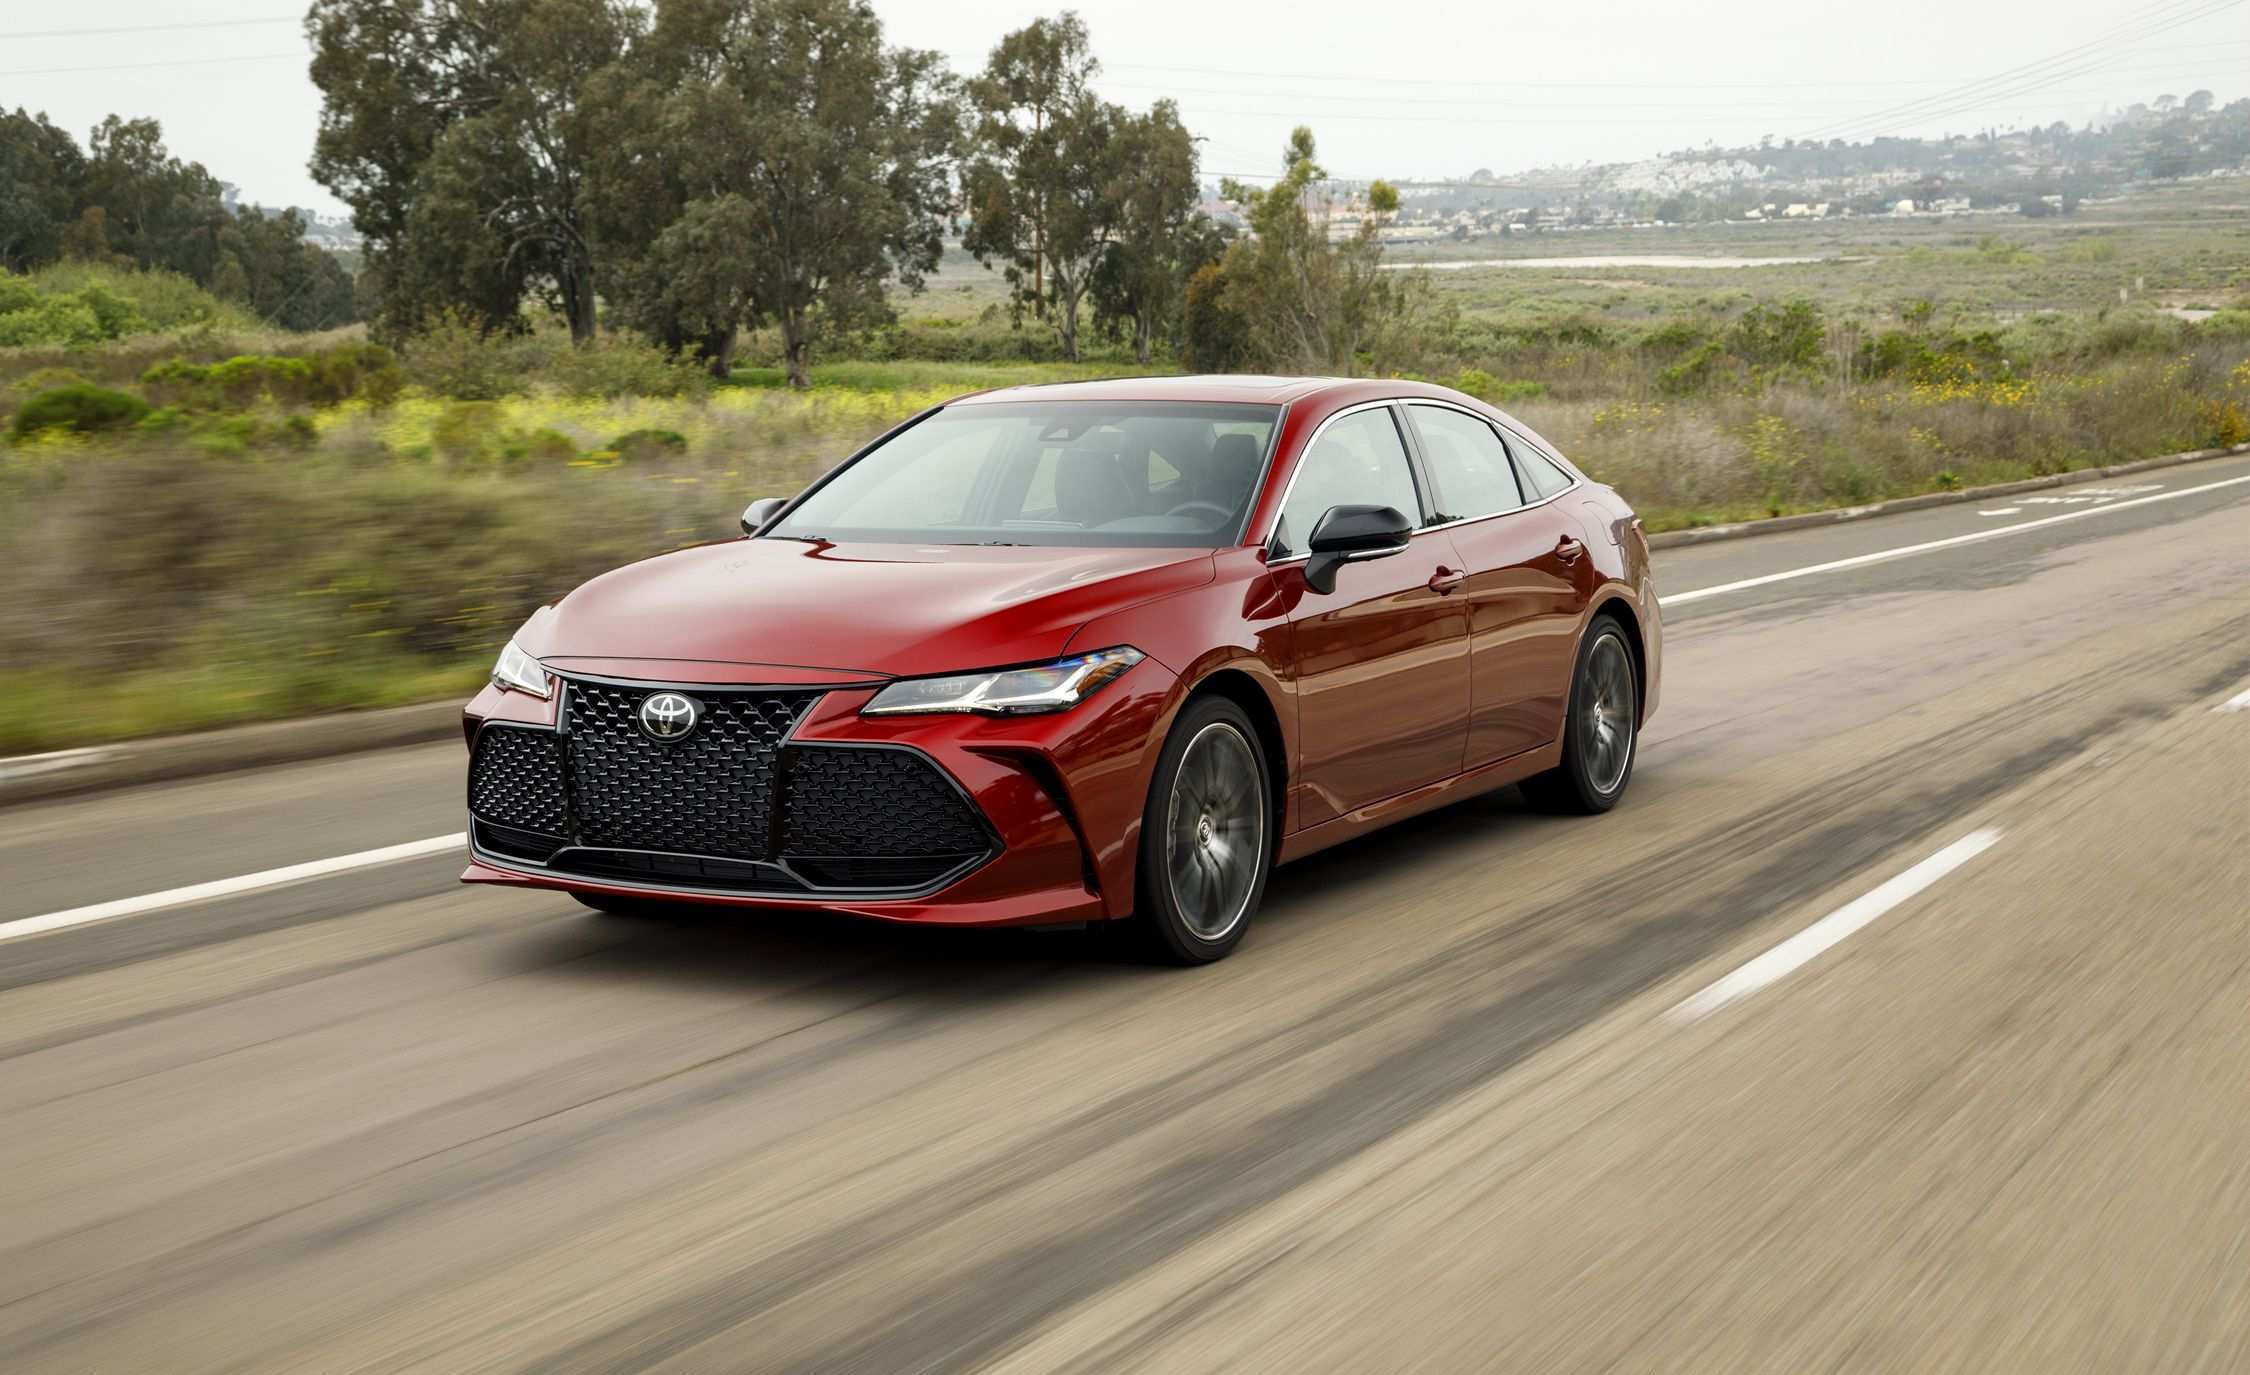 99 The 2019 Toyota Avalon Price And Review